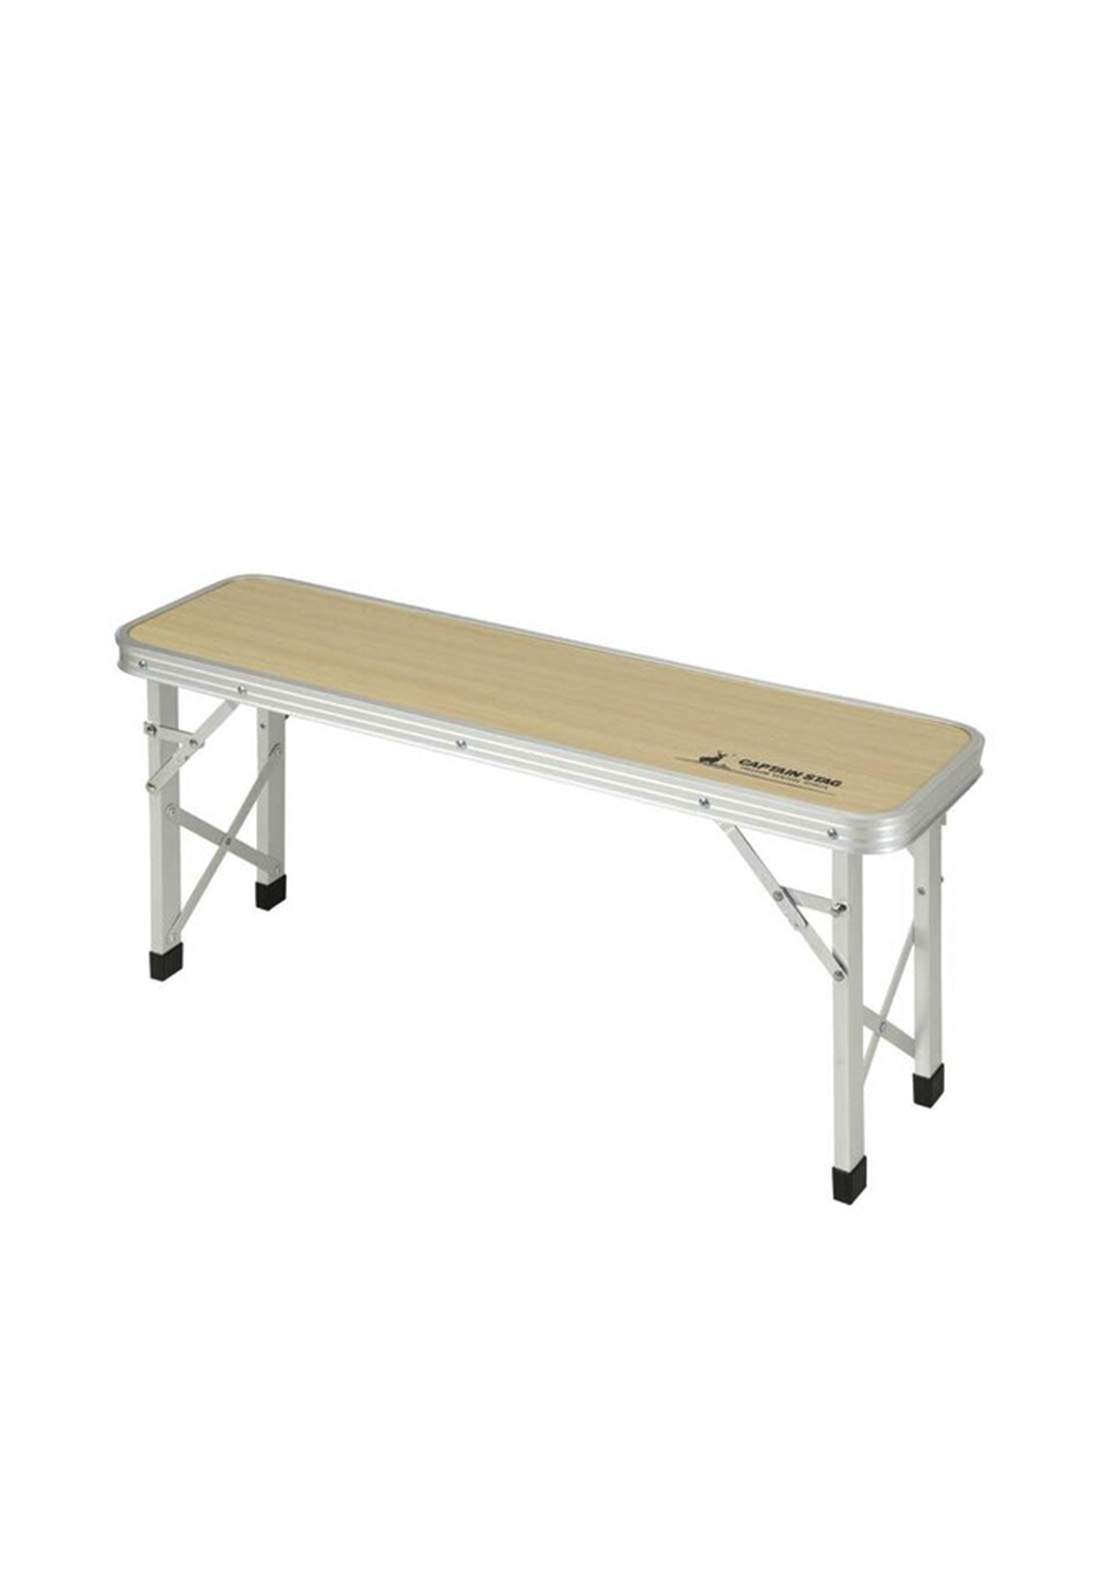 Captain Stag UC-0540 Just Size Bench Table طاولة بنش